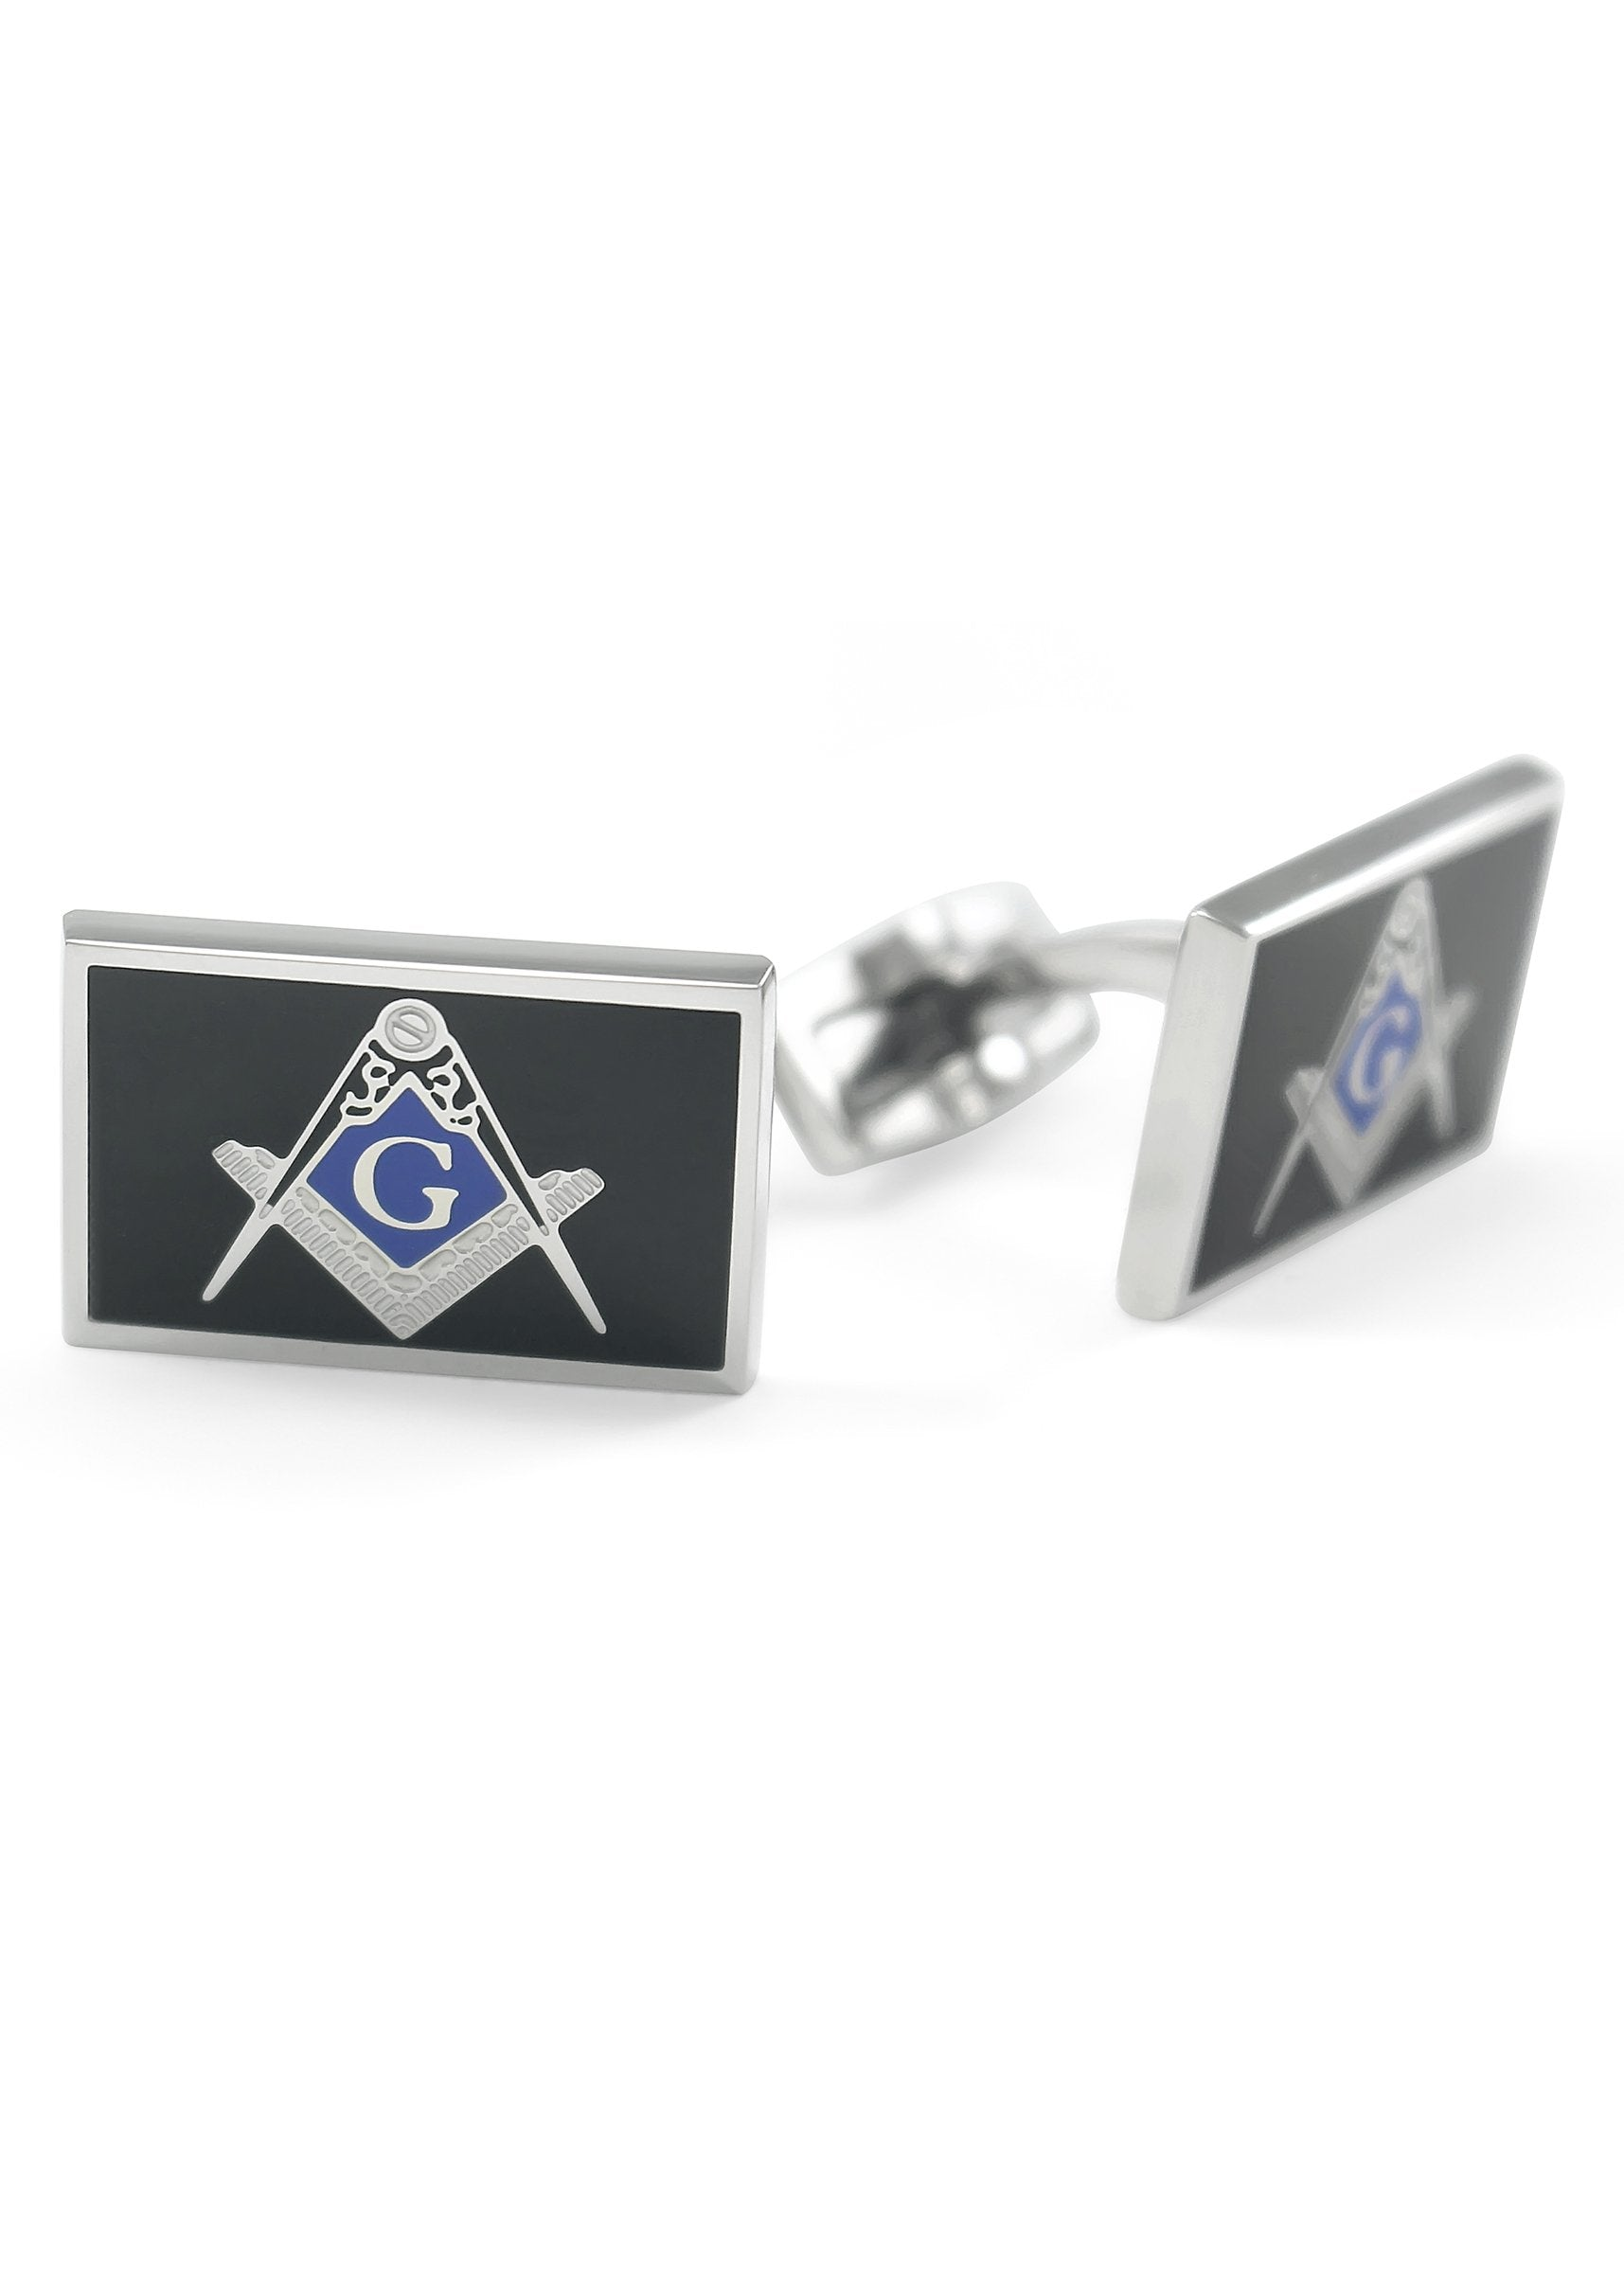 Masonic Cuff Links with Square and Compass